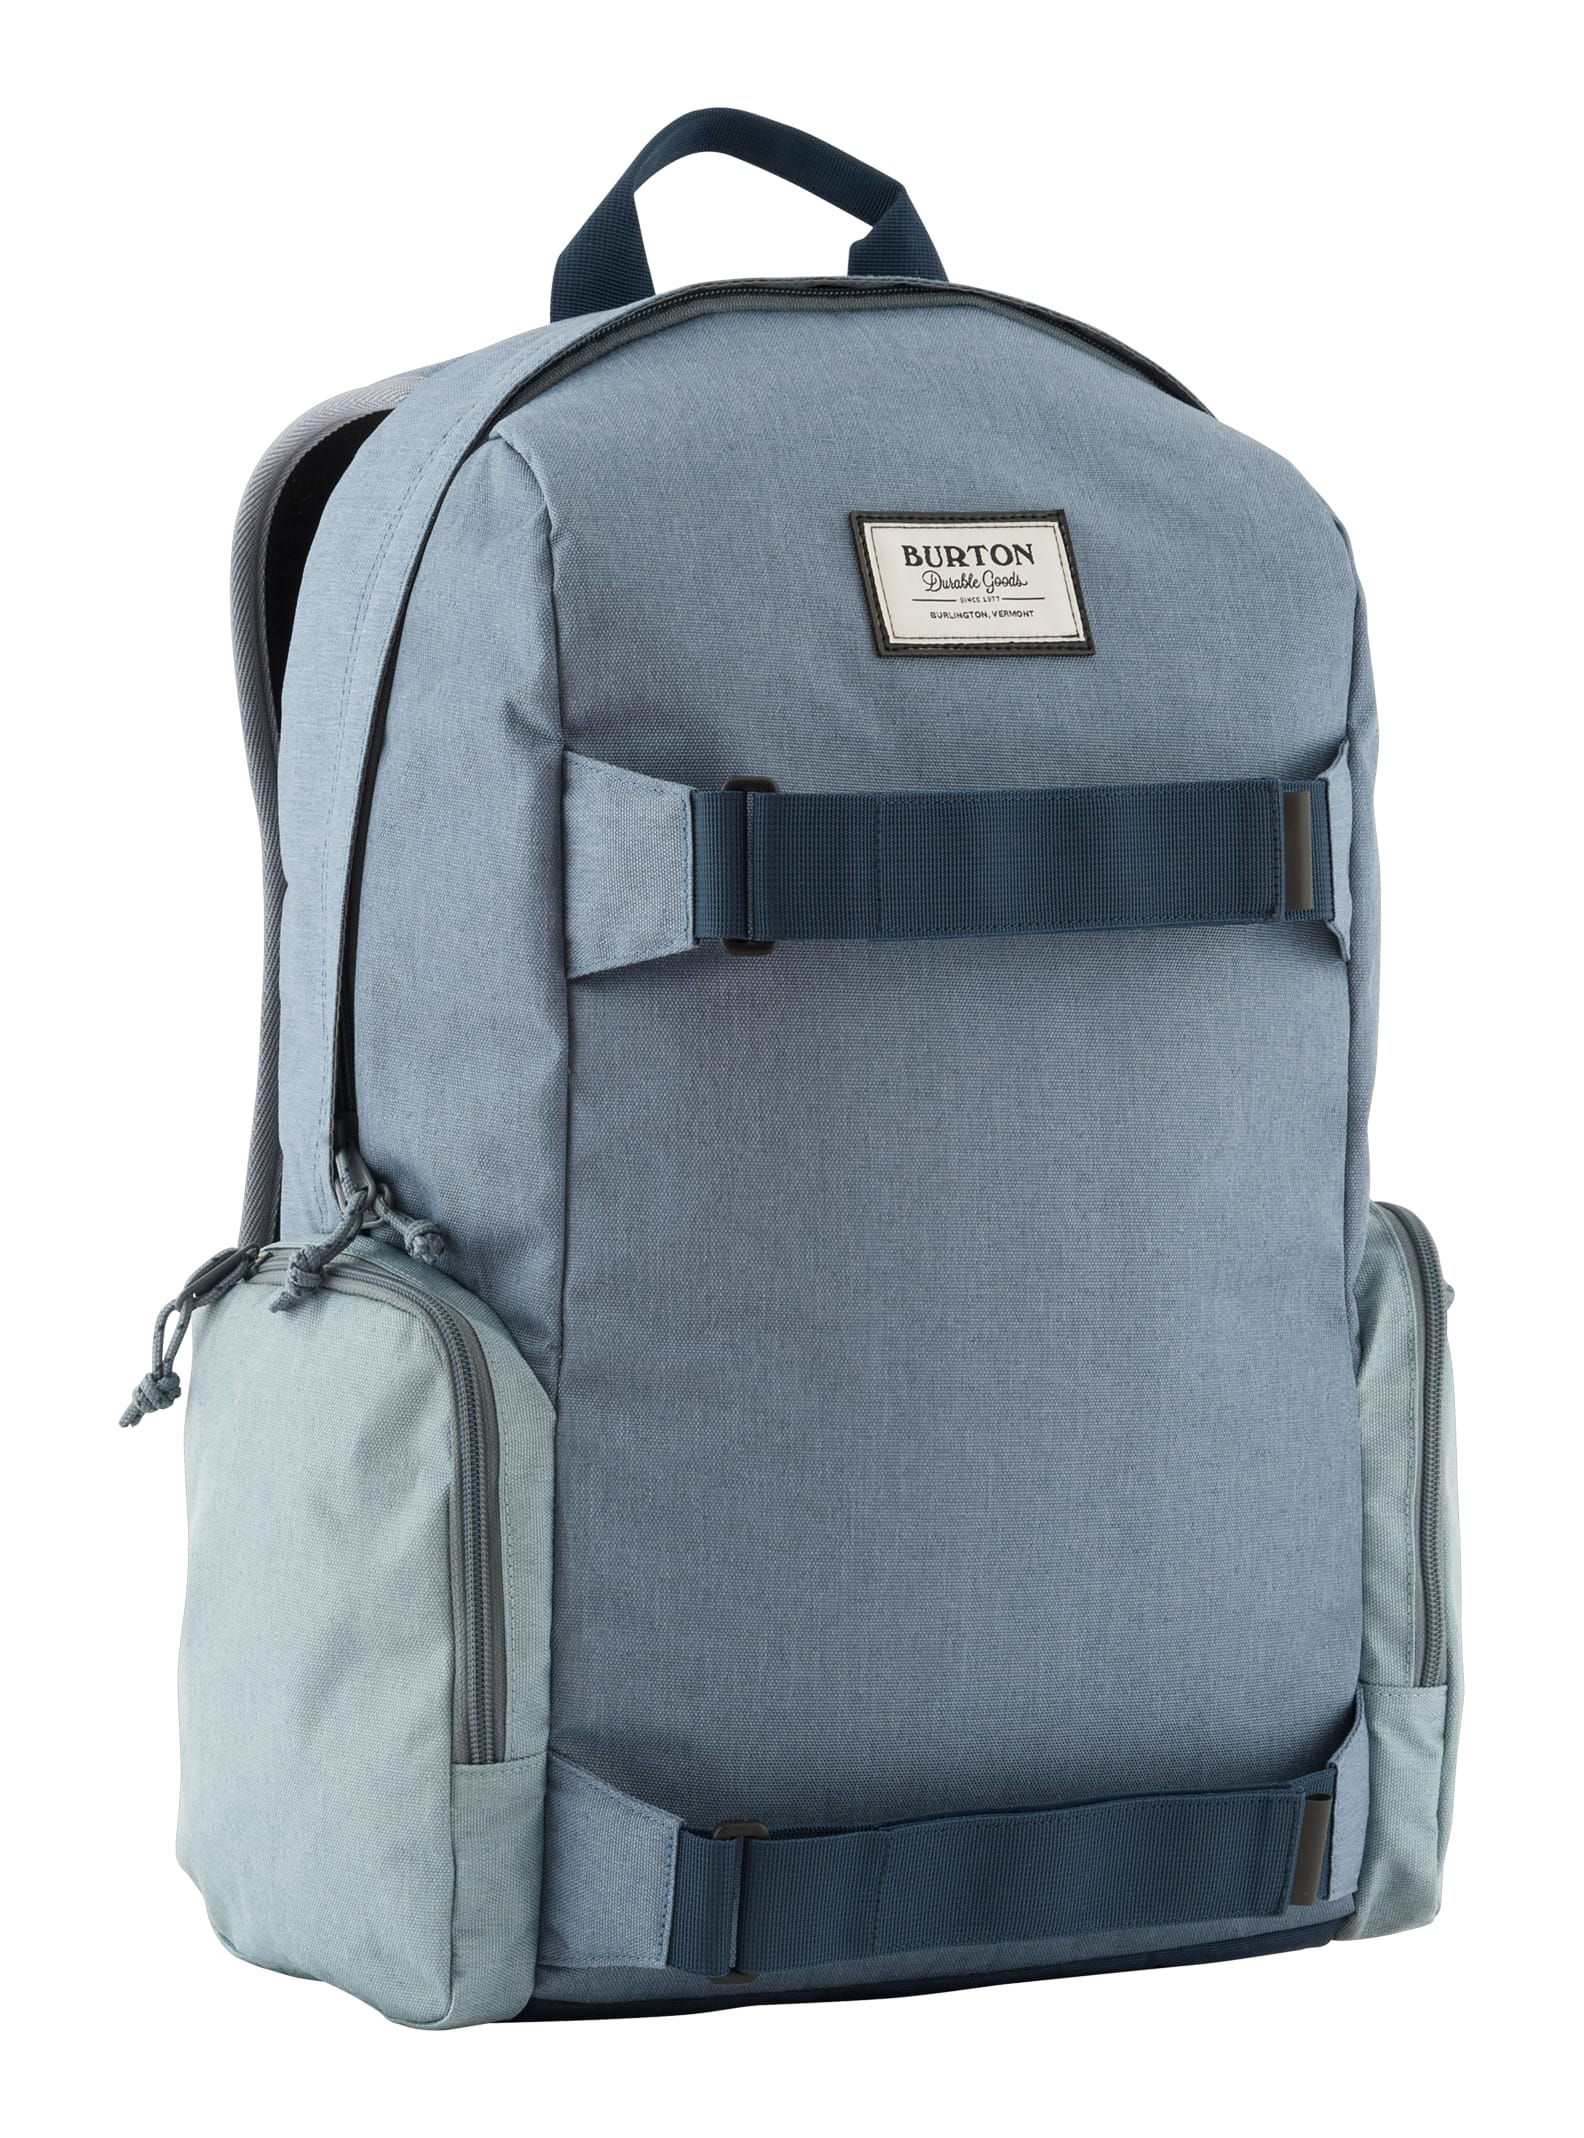 4179a66a4864f Burton Emphasis Backpack